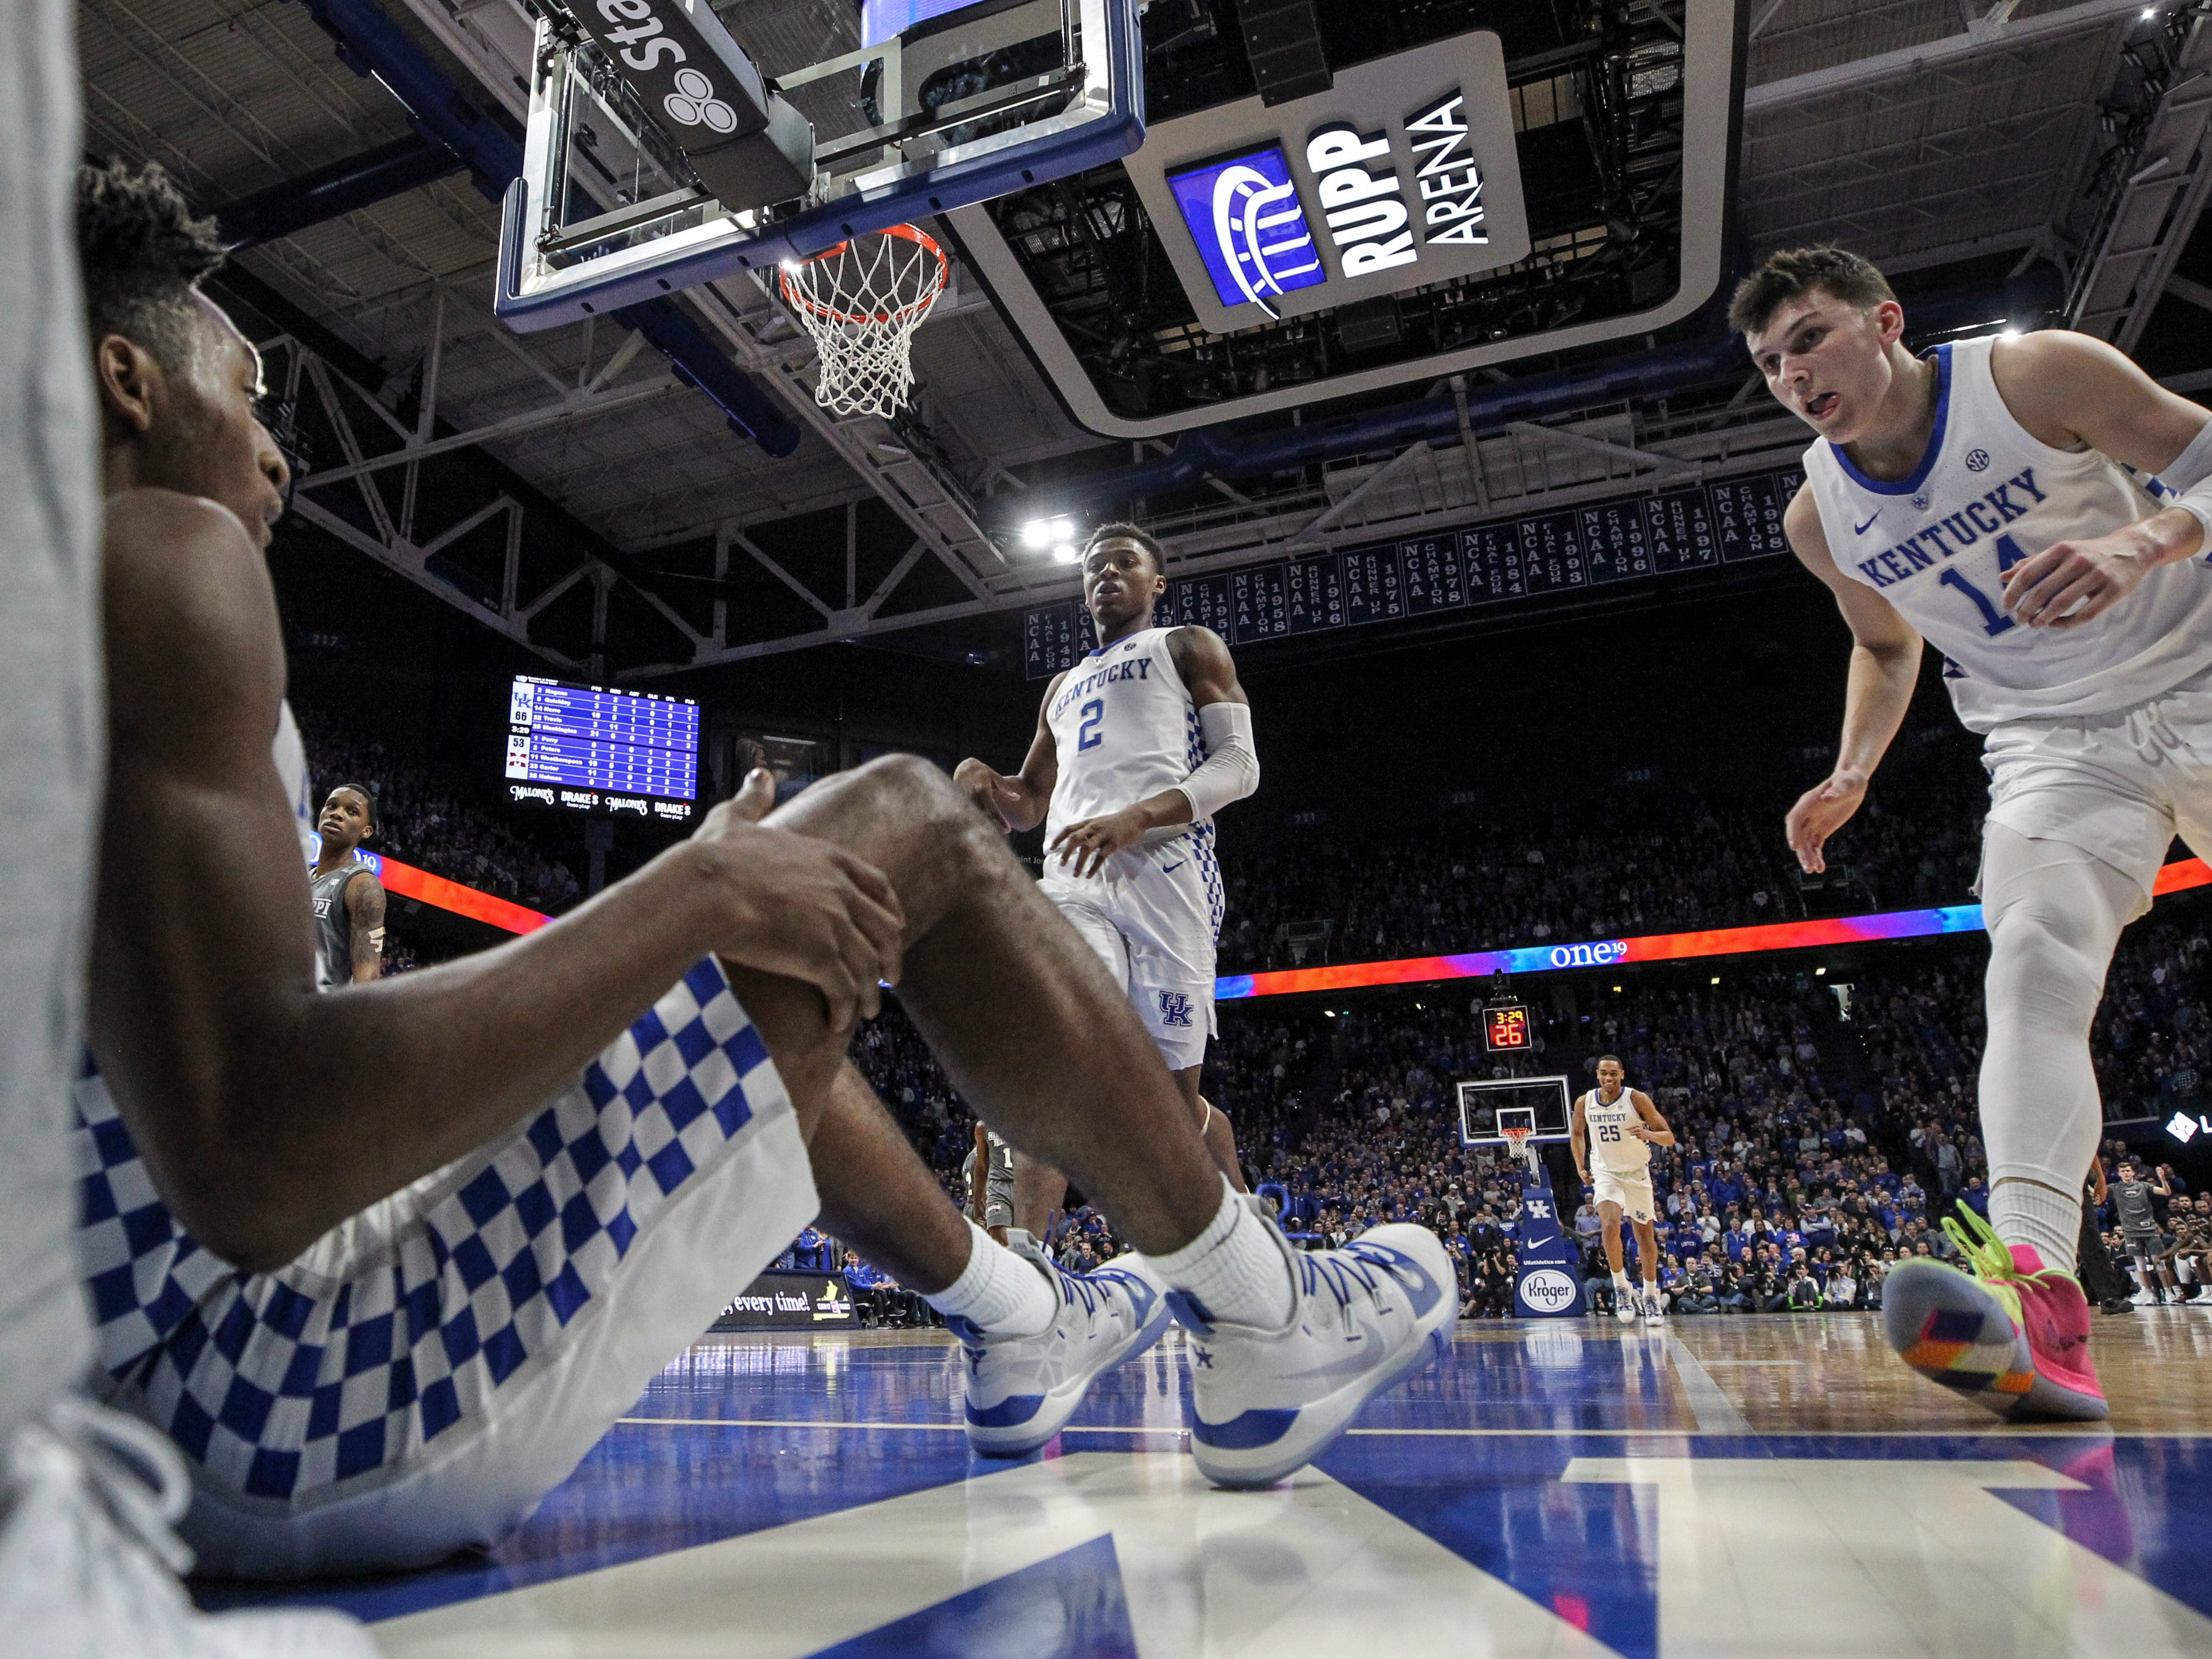 Kentucky's Immanuel Quickley was knocked down by Mississippi State while driving to the basket as teammate Tyler Herro ran to help him up Tuesday night at Rupp Arena in Lexington.